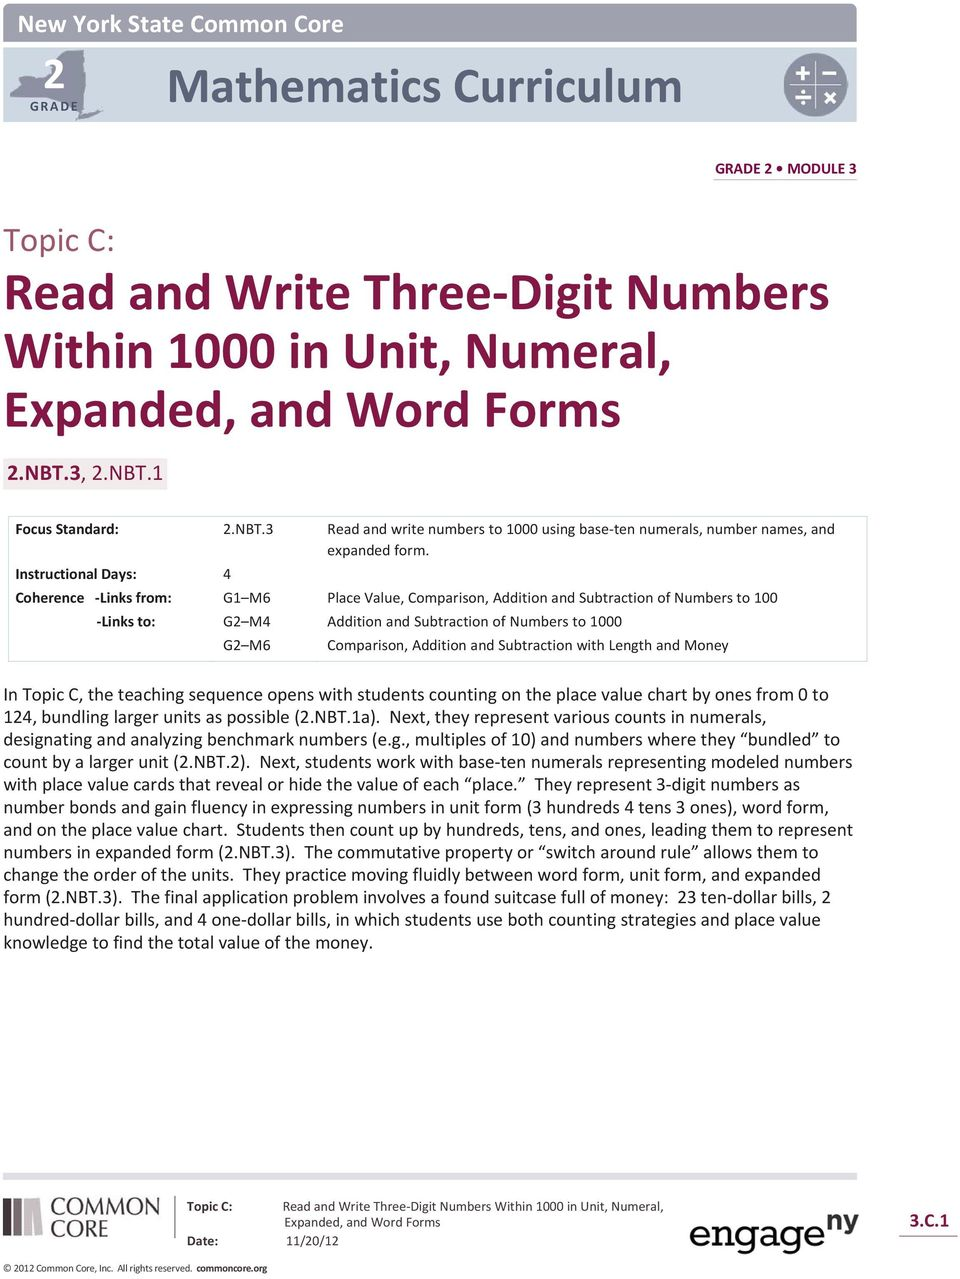 Instructional Days: 4 Coherence Links from: G1 M6 Place Value, Comparison, Addition and Subtraction of Numbers to 100 Links to: G2 M4 Addition and Subtraction of Numbers to 1000 G2 M6 Comparison,